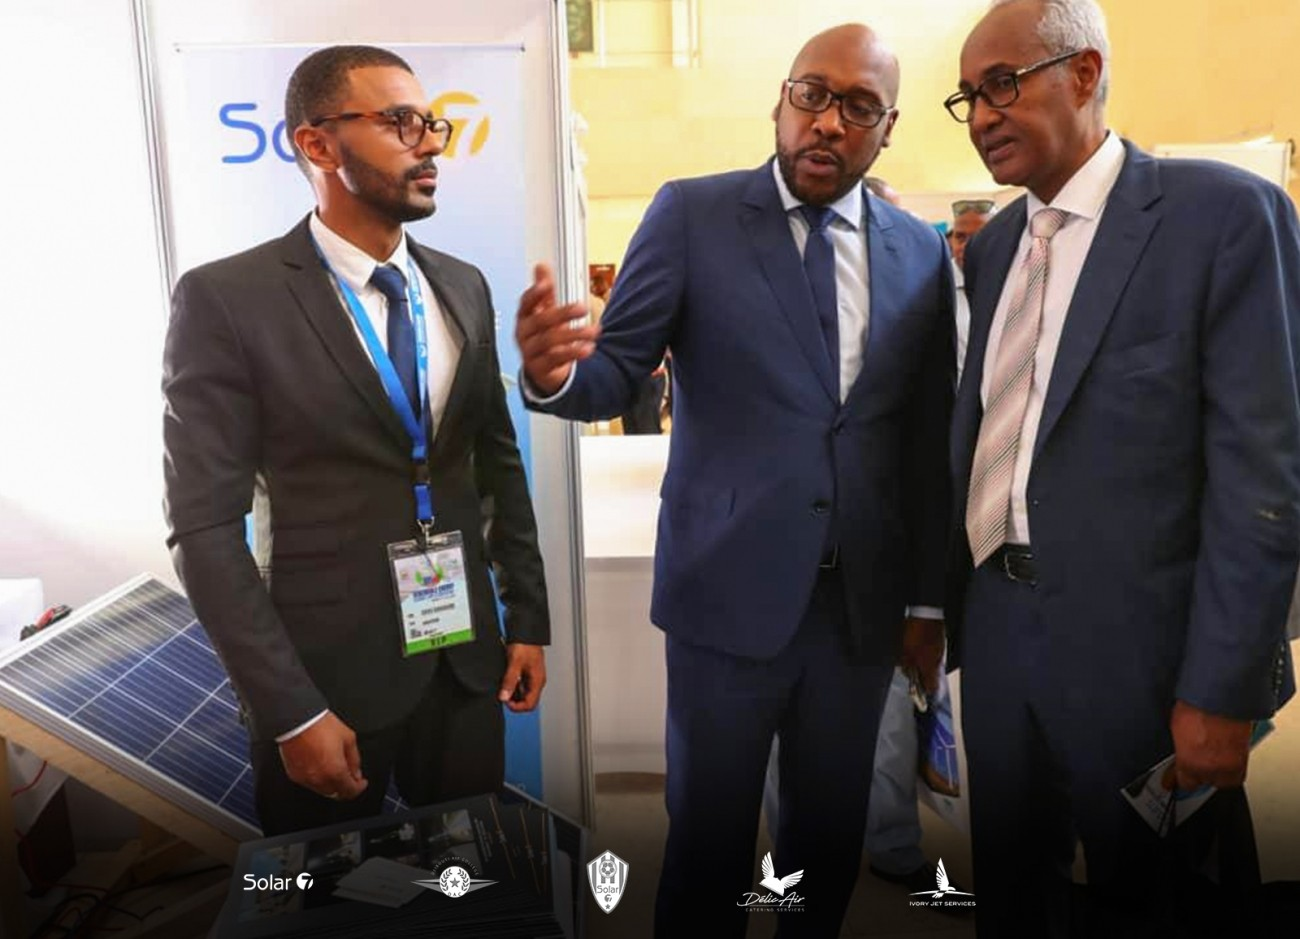 Djibouti Tommy Tayoro Nyckoss, l'homme aux multiples affaires